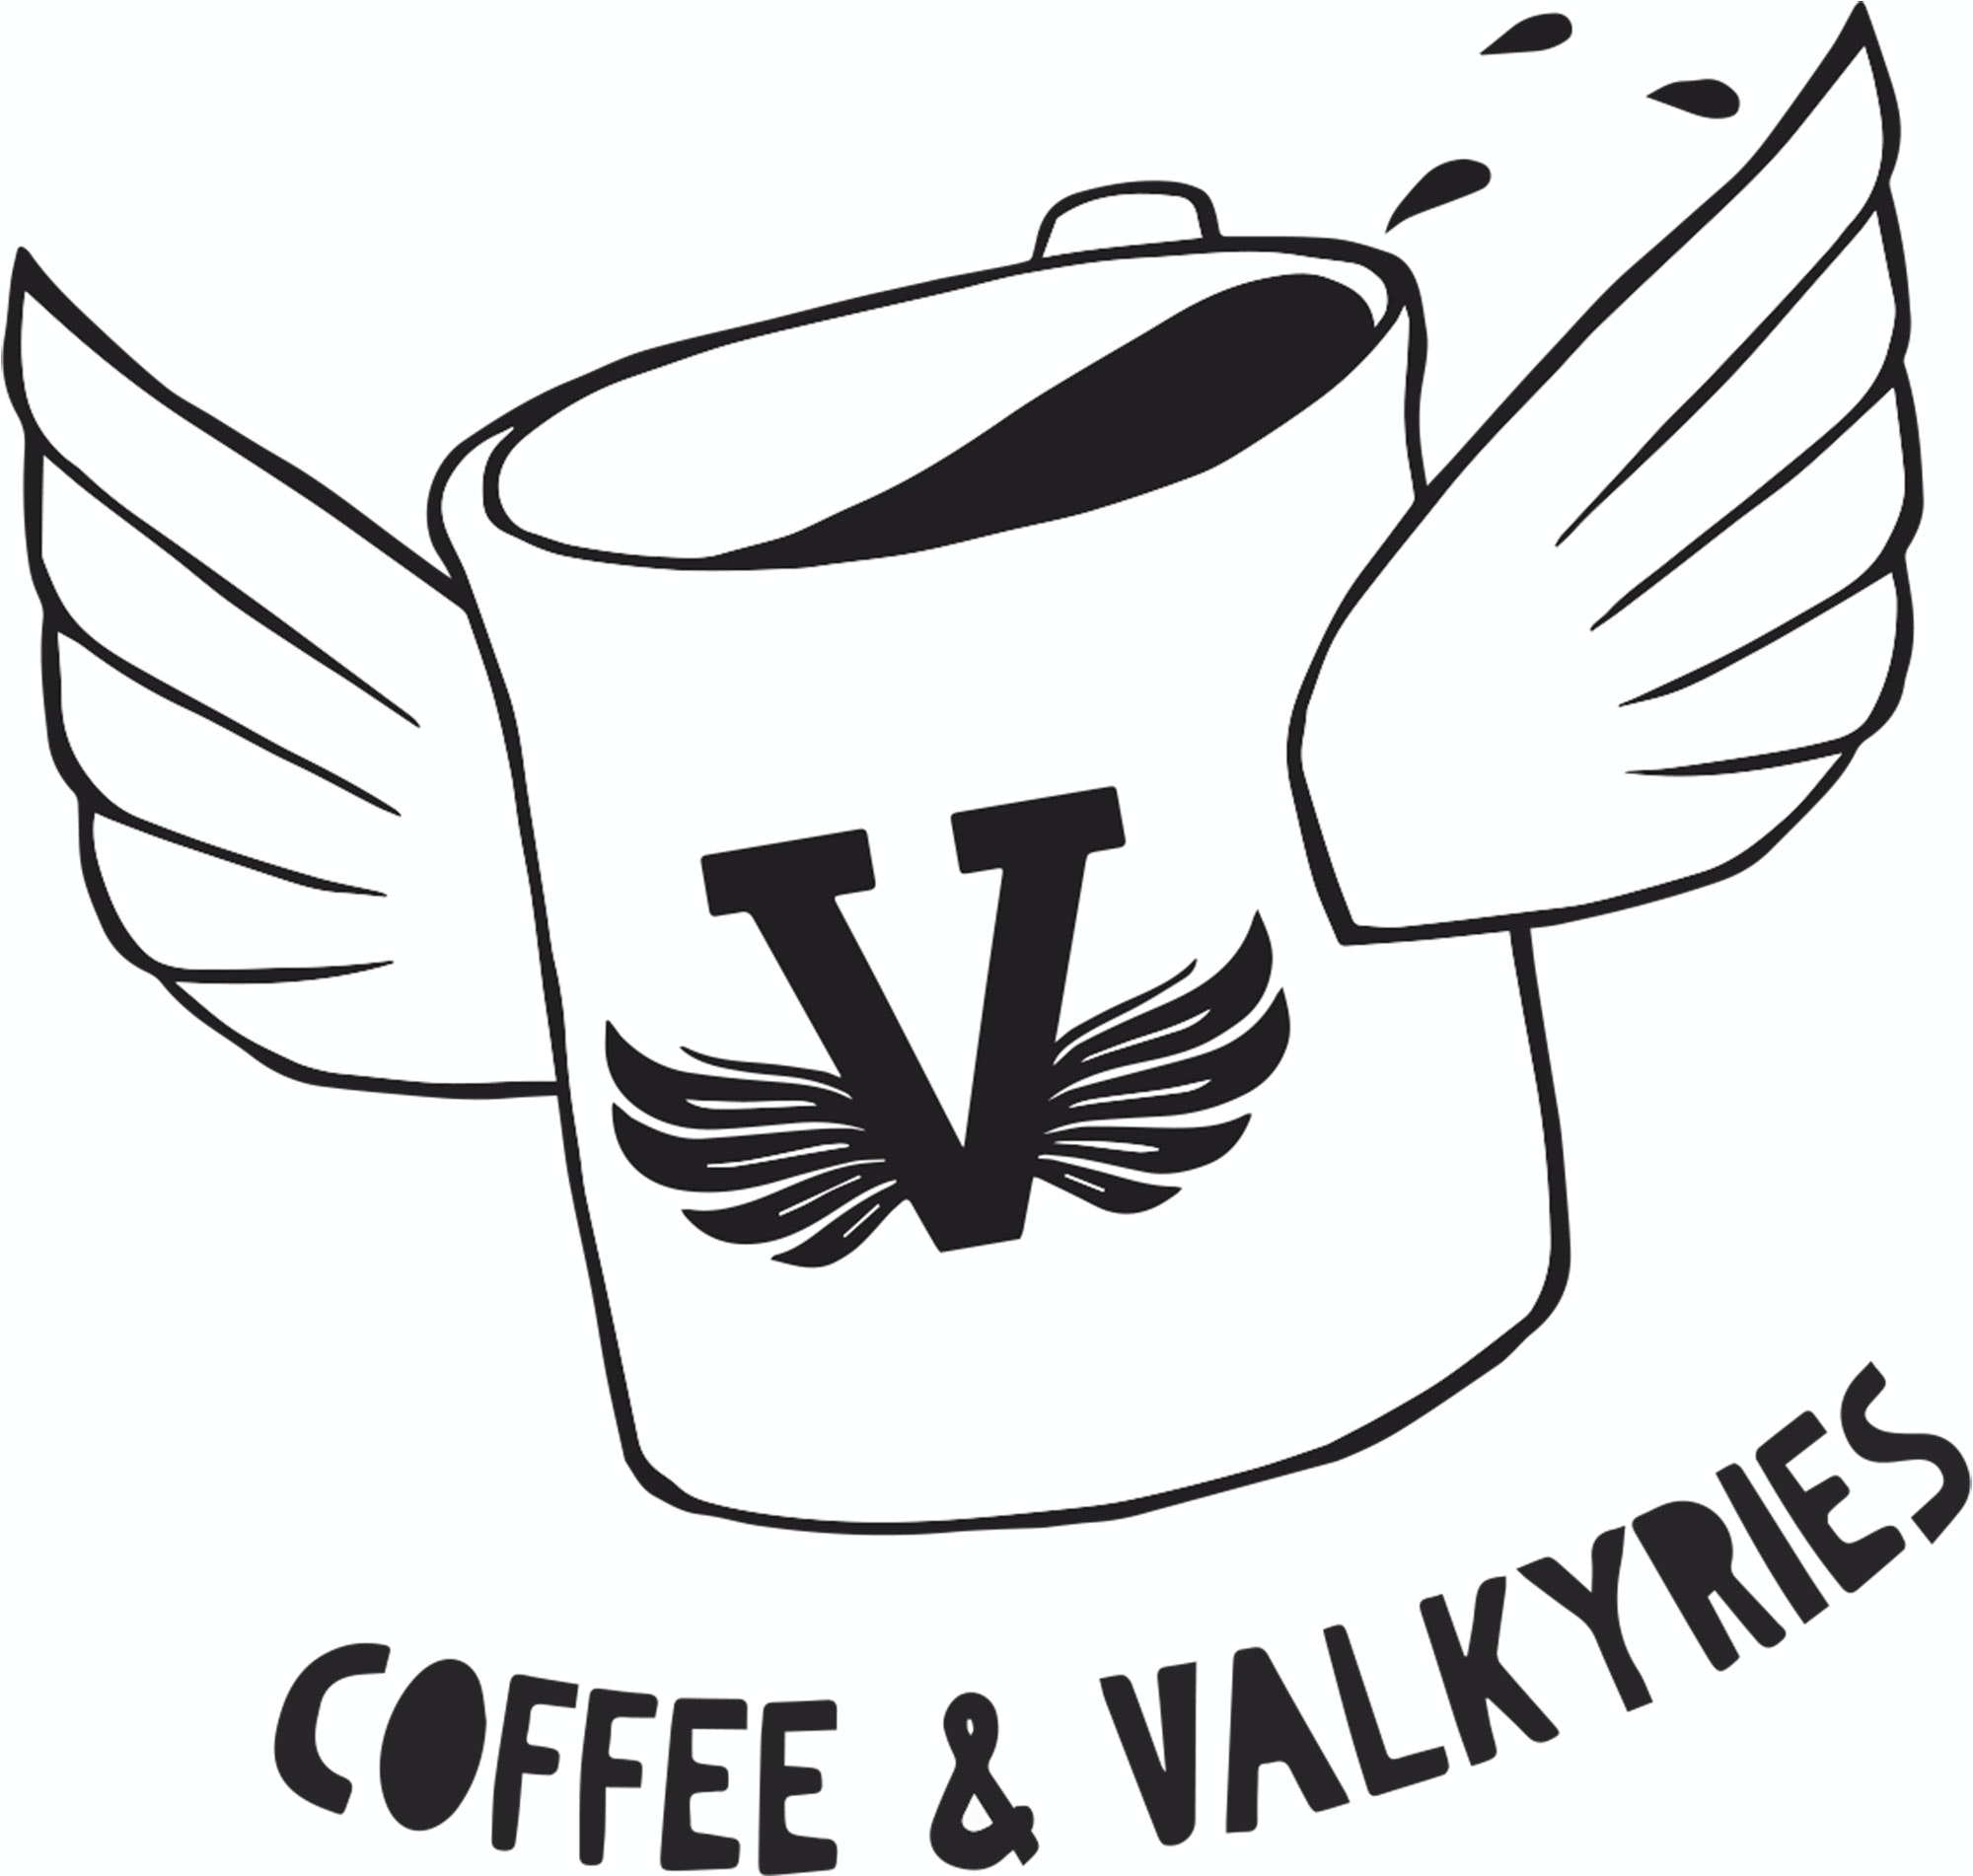 Coffee & Valkyries: Episode 2 by Sounder at Heart: for Seattle Sounders and Reign FC fans